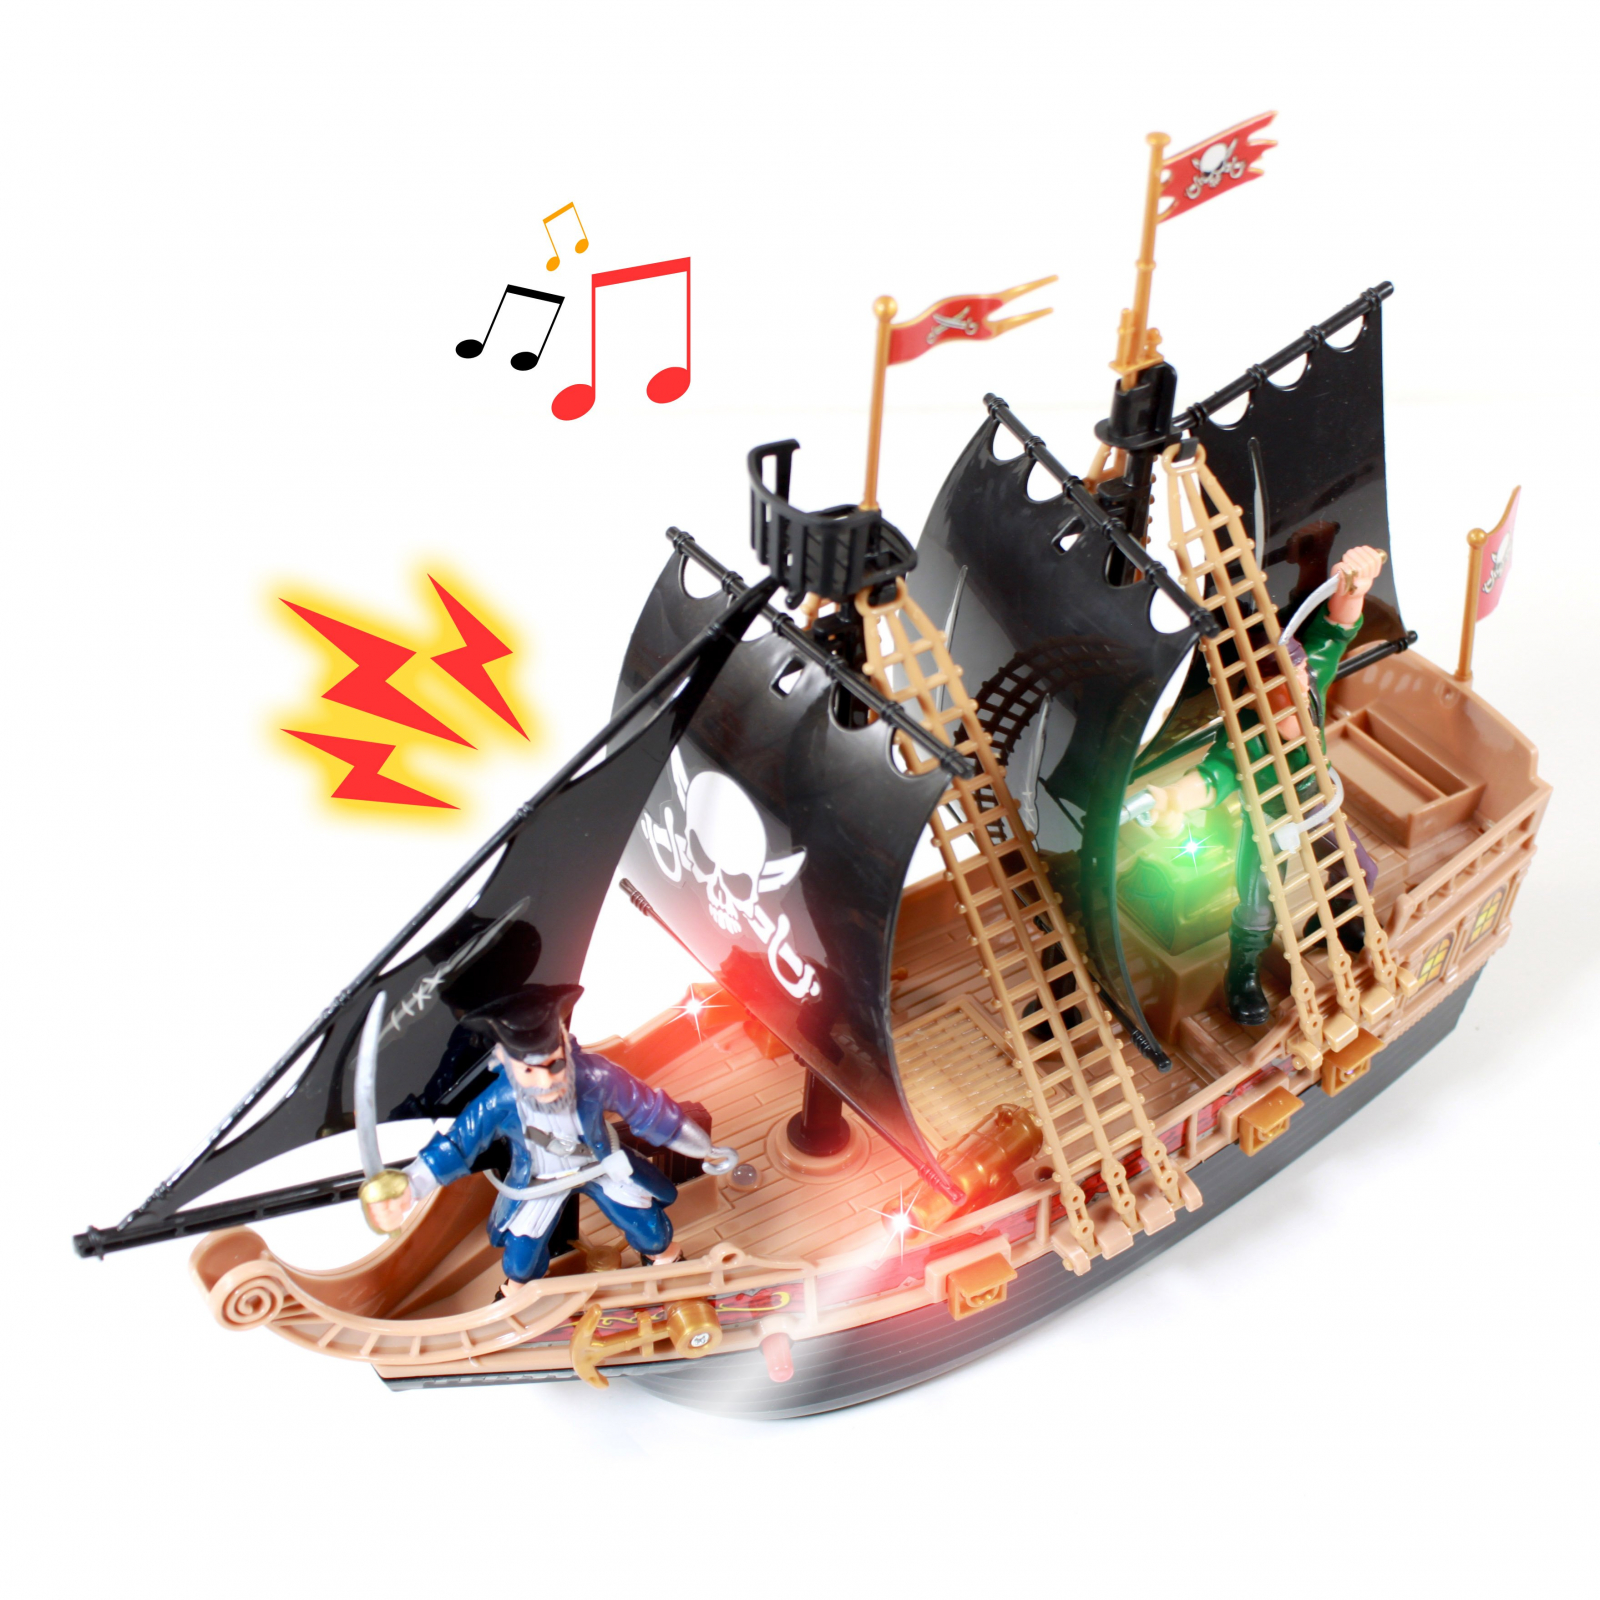 KidPlay Products Kids Pirate Ship Adventure Toy - Black